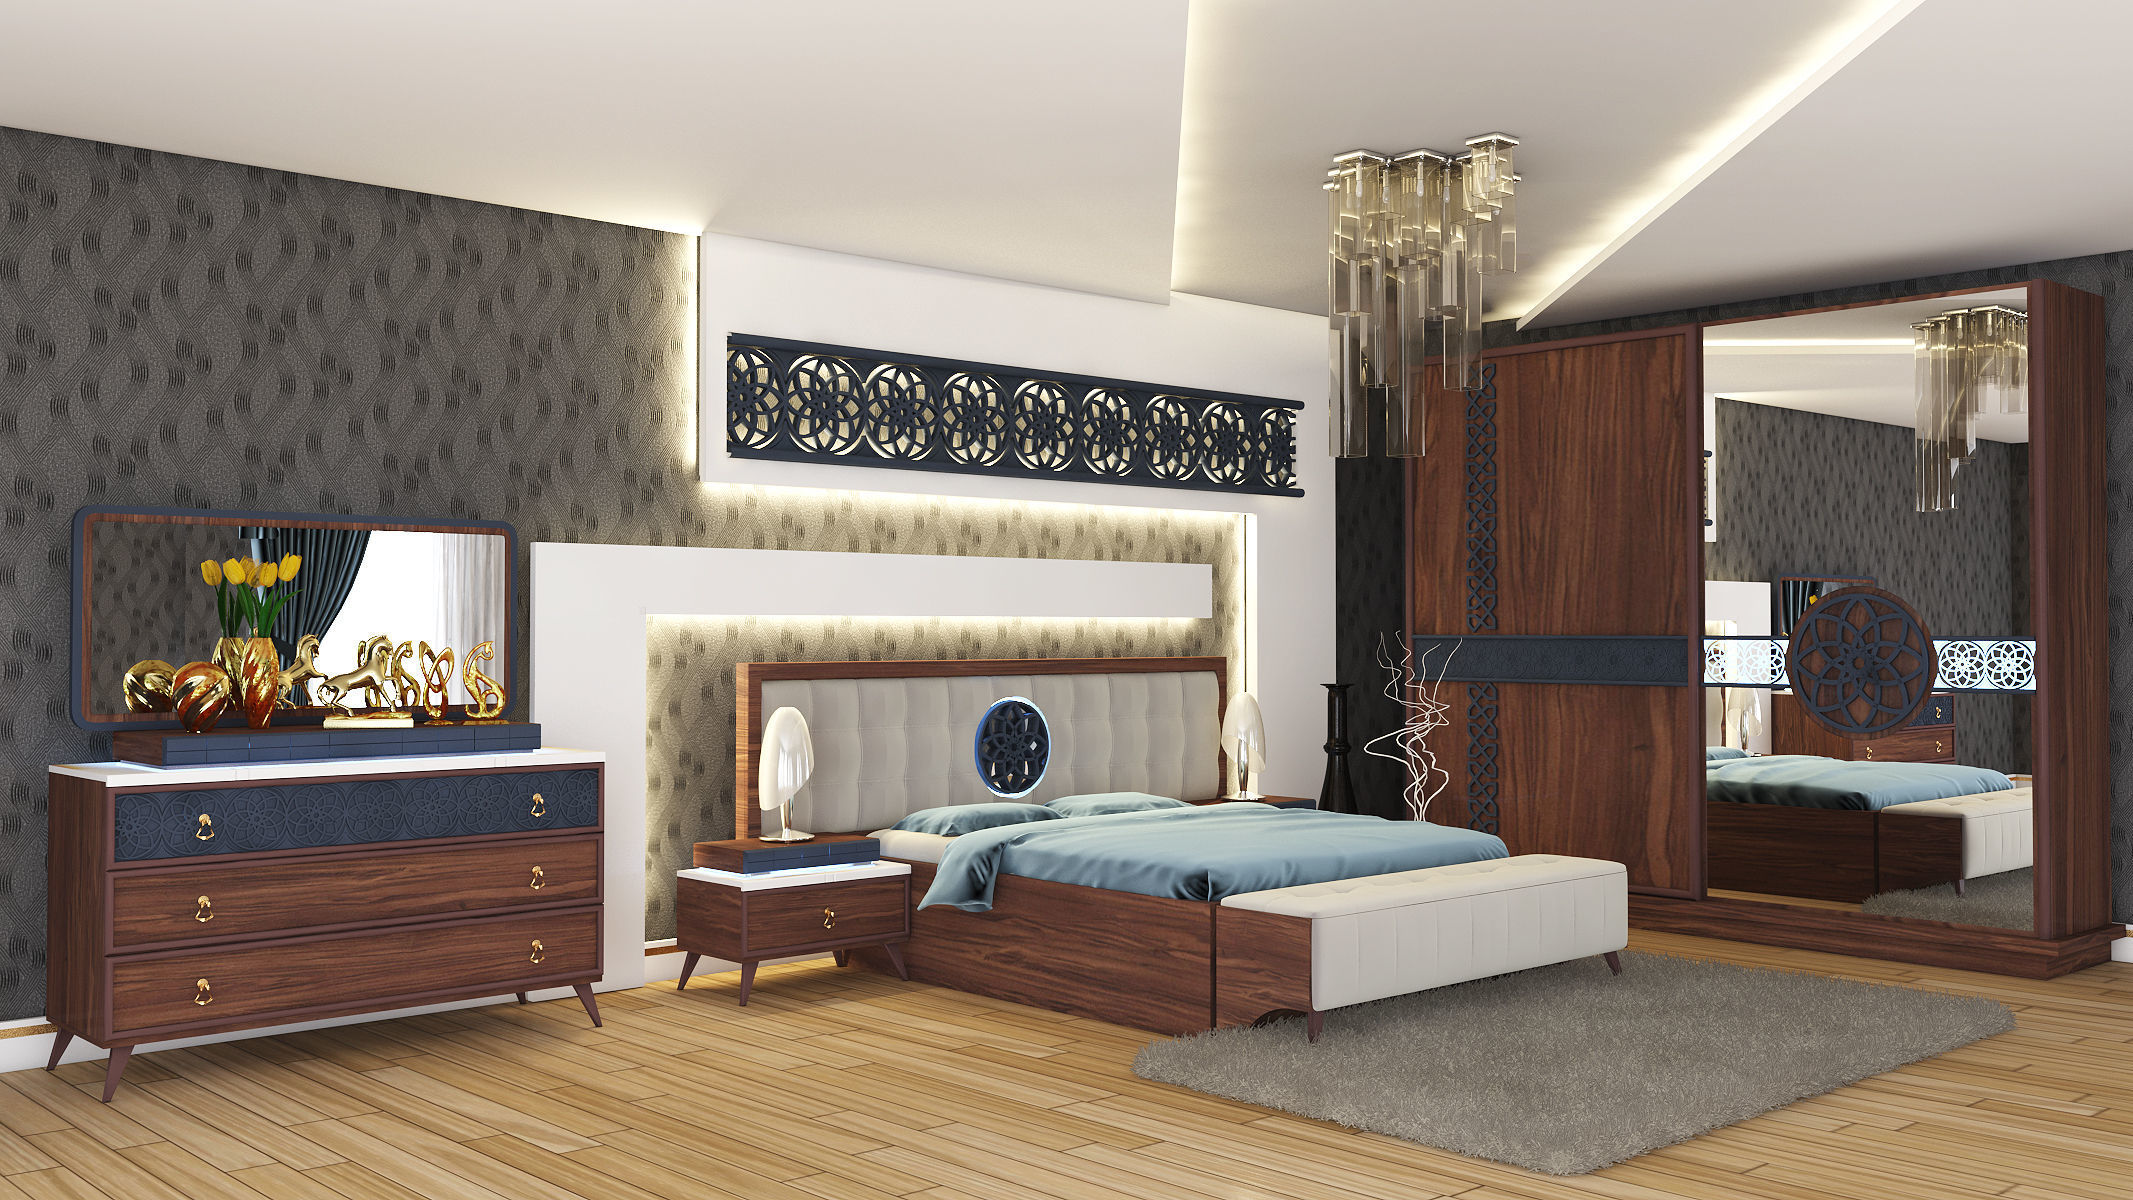 Antakya Bedroom Interior Design 3D model | CGTrader on Model Bedroom Ideas  id=80491